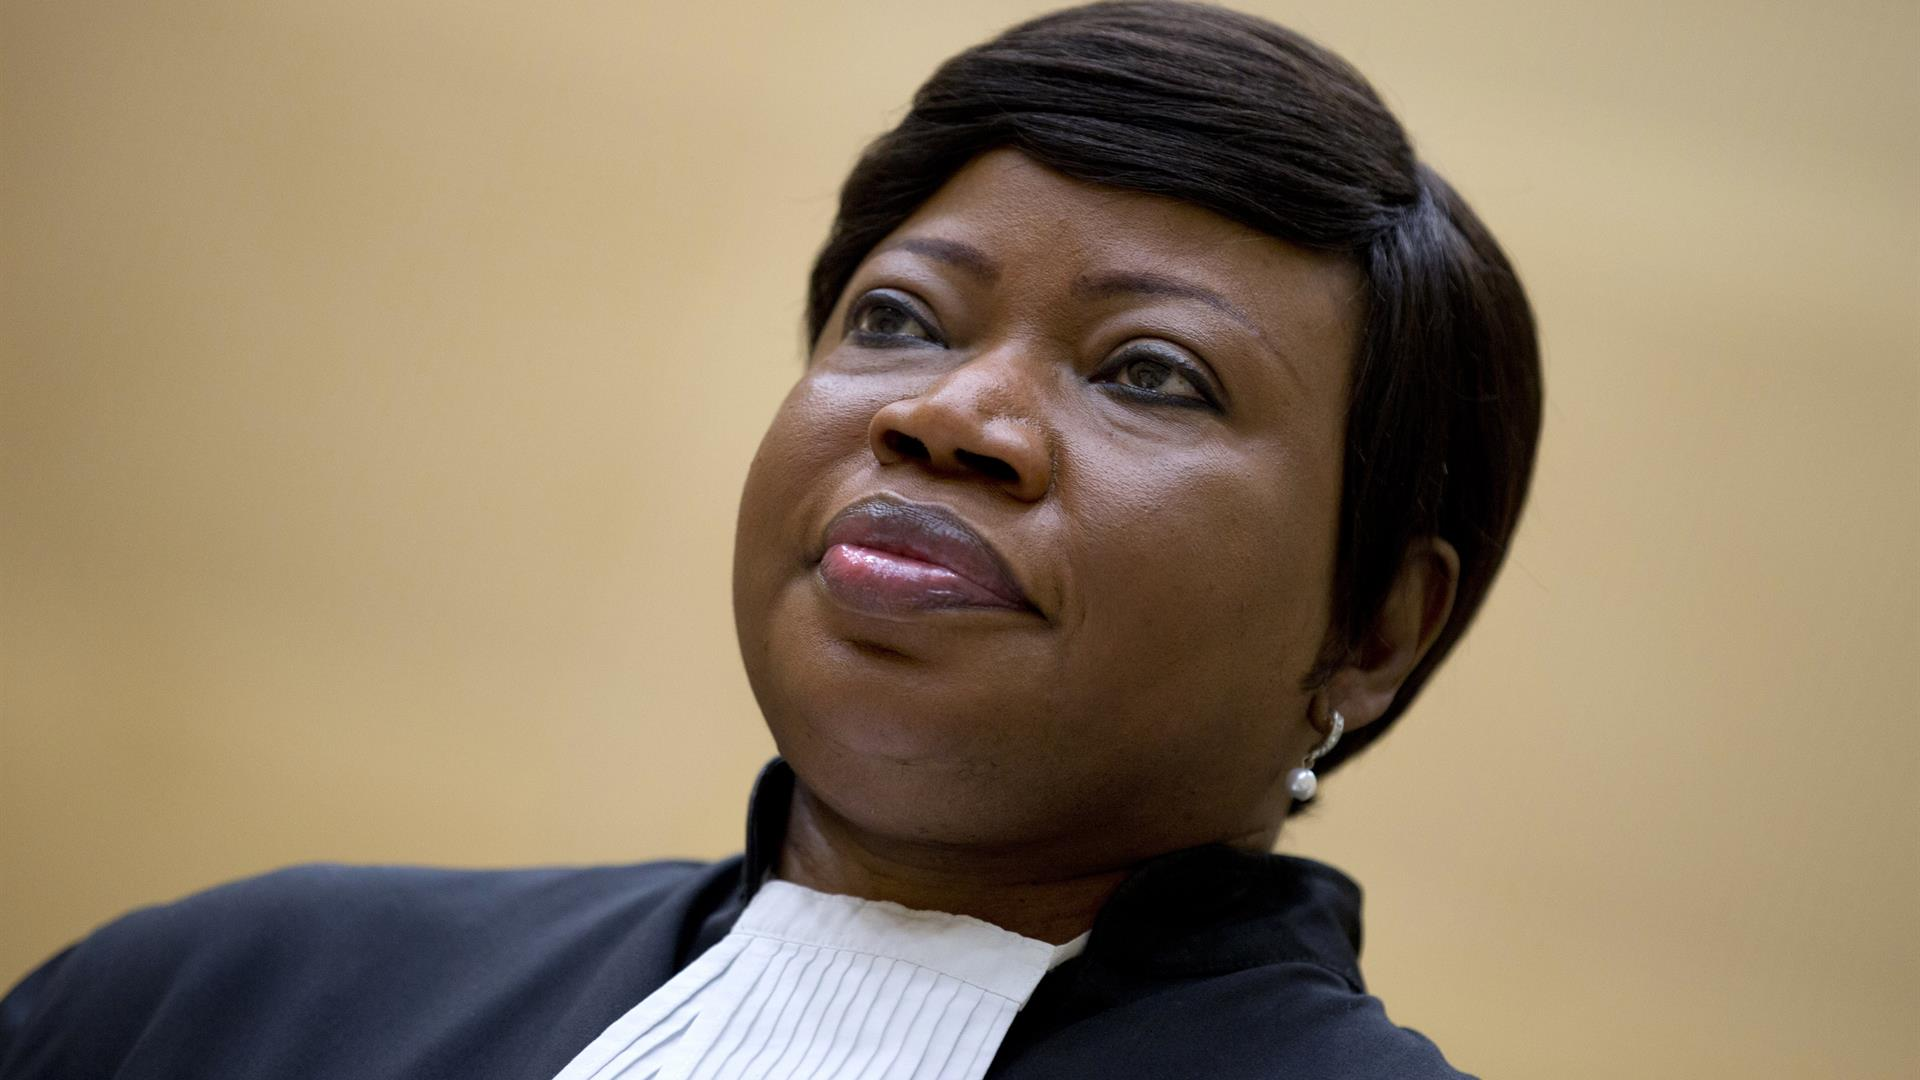 Fatou Bensouda CPI Getty